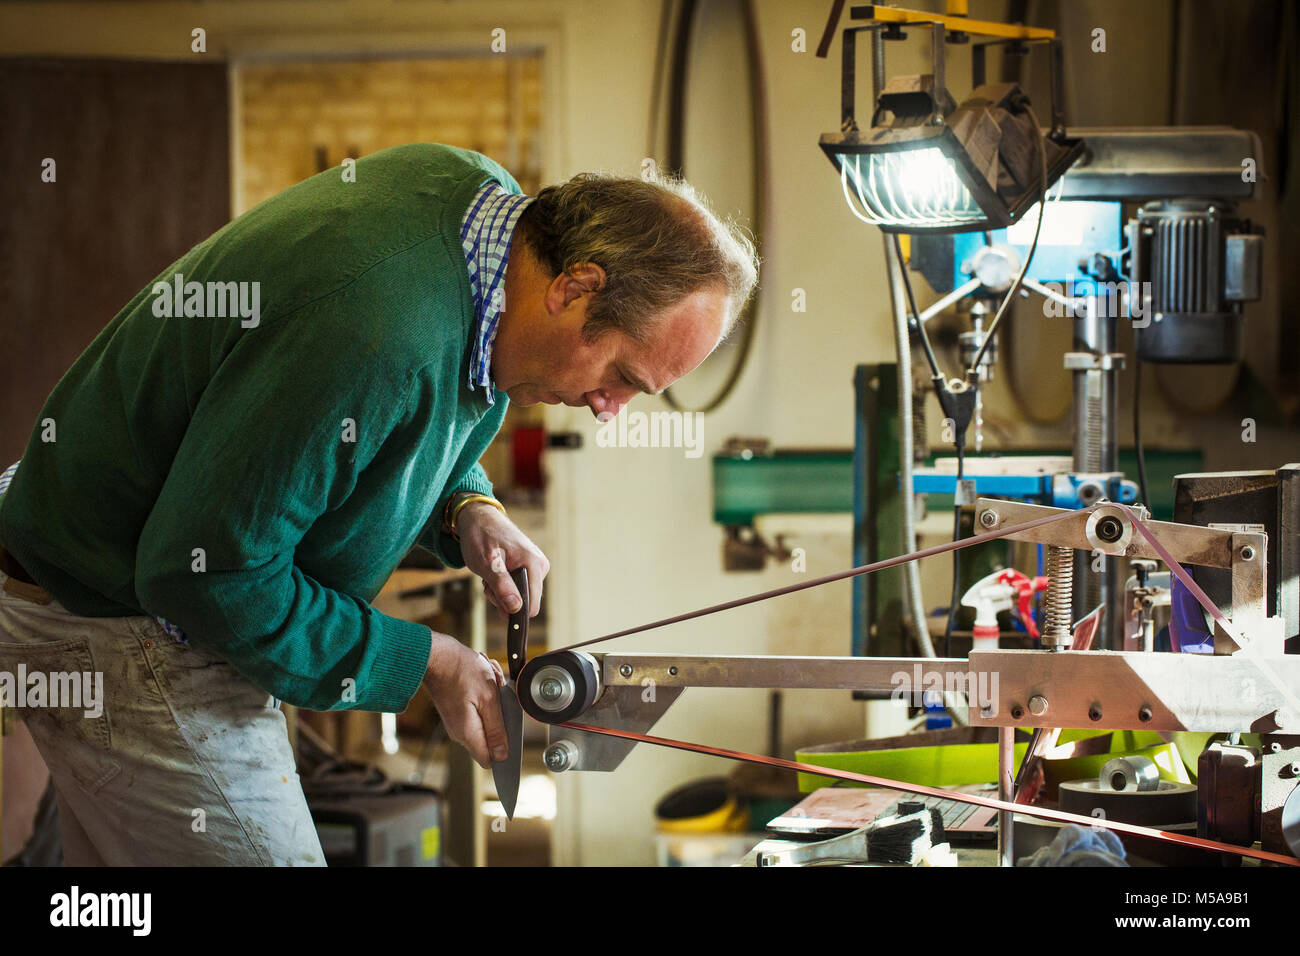 A craftsman in a workshop, holding a knife and smoothing and finishing a handle with a sanding wheel. - Stock Image